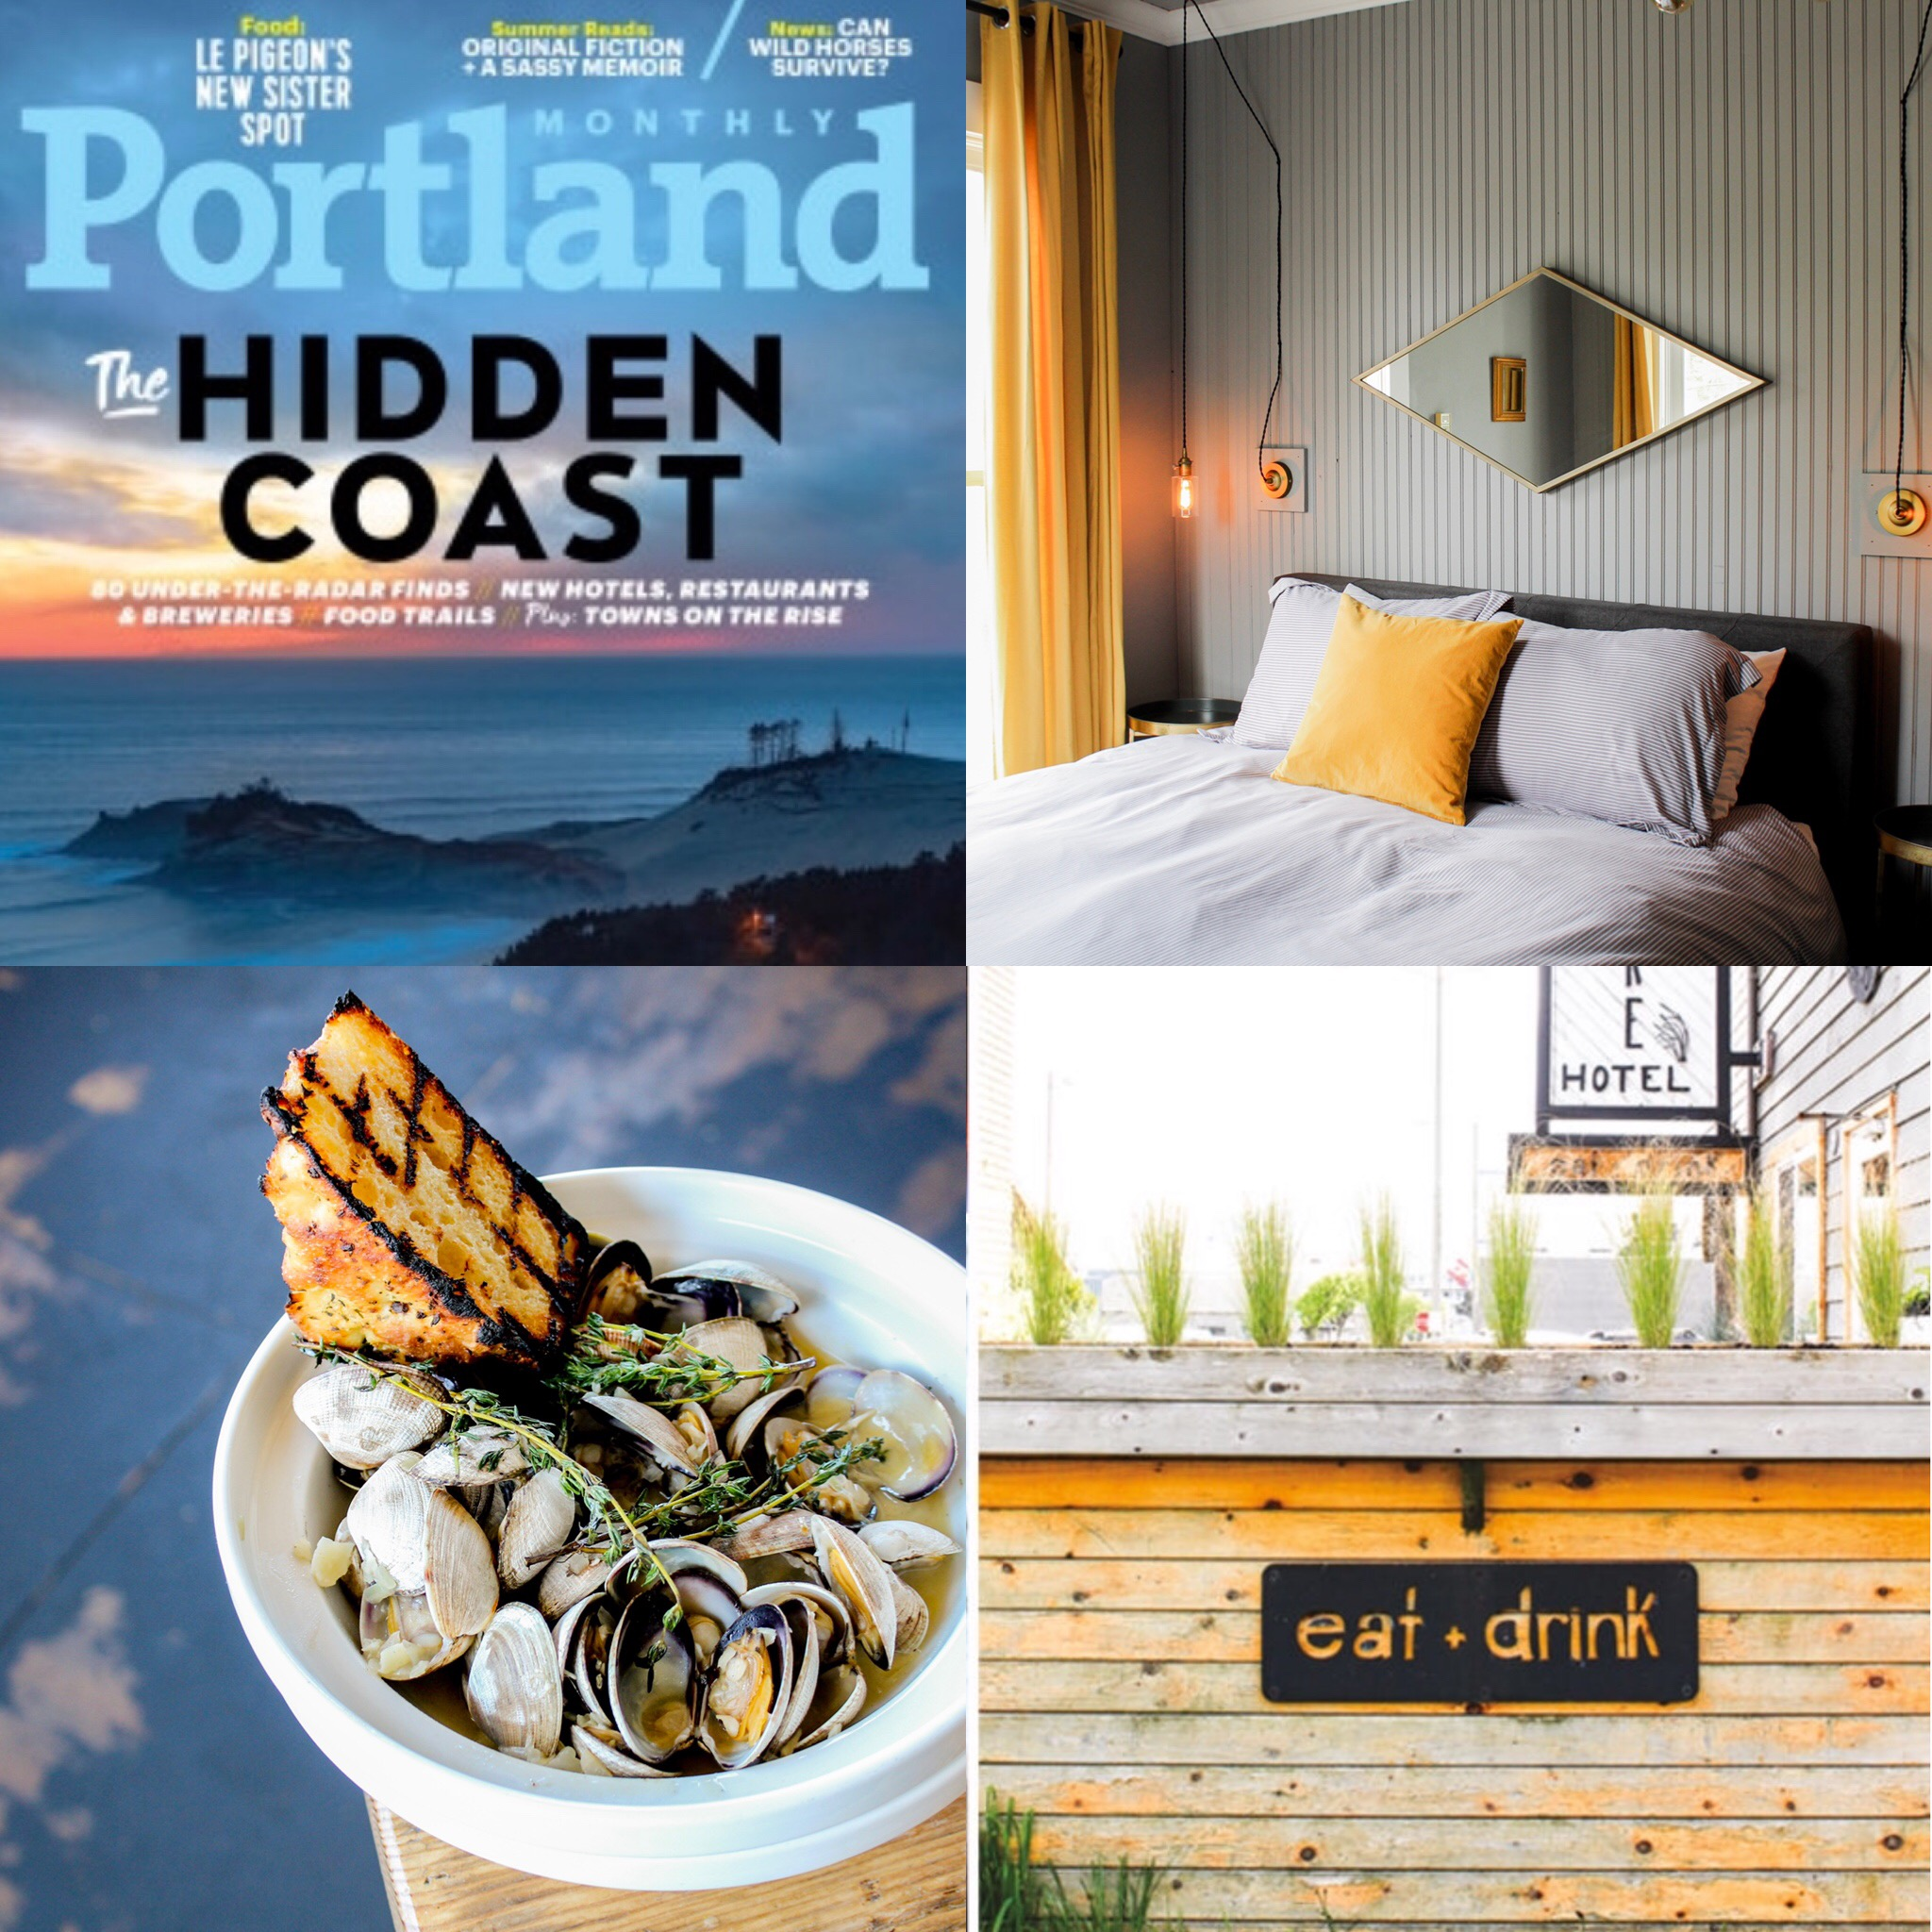 PORTLAND MONTHLY - AUGUST 2018   North Coast tour spread